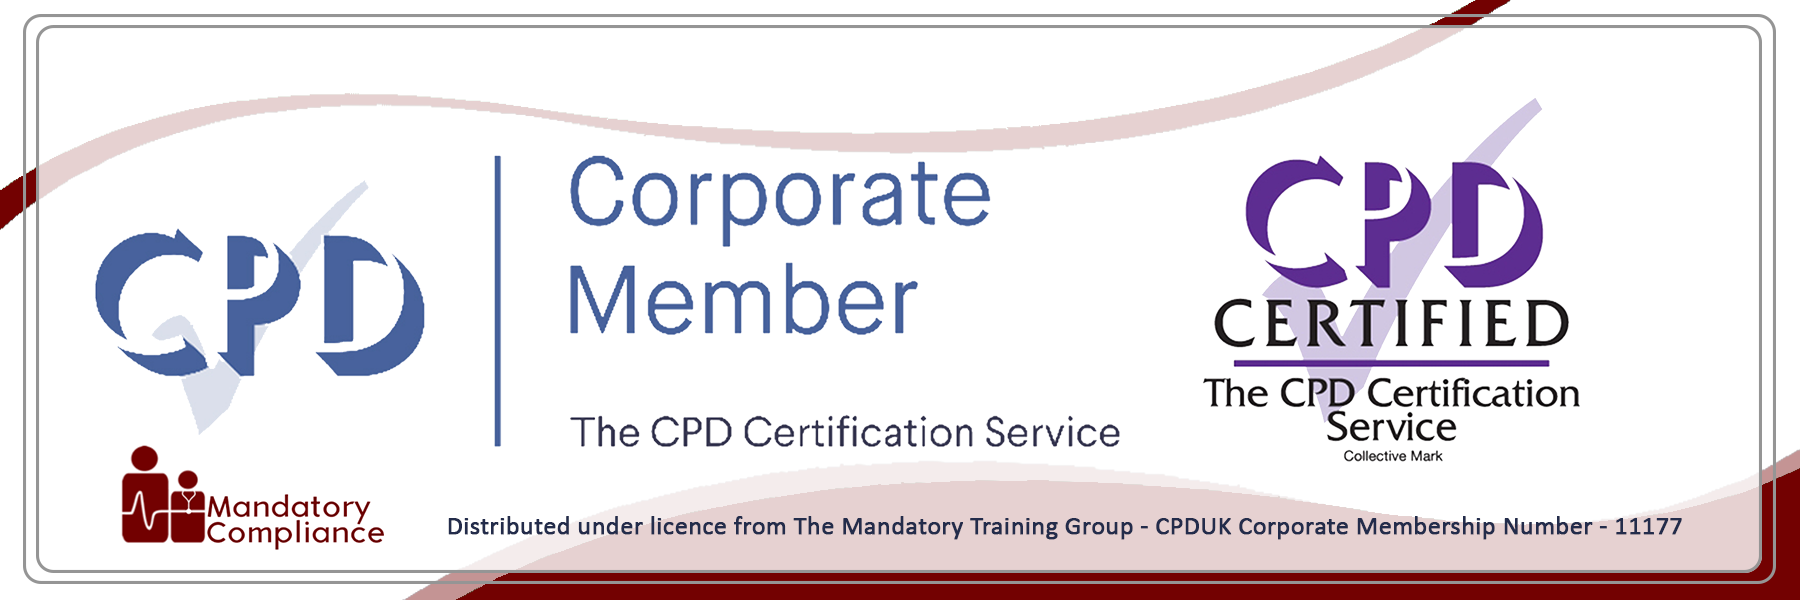 Care Certificate Standard 12 - Online Training Course - CPD Accredited - Mandatory Compliance UK -